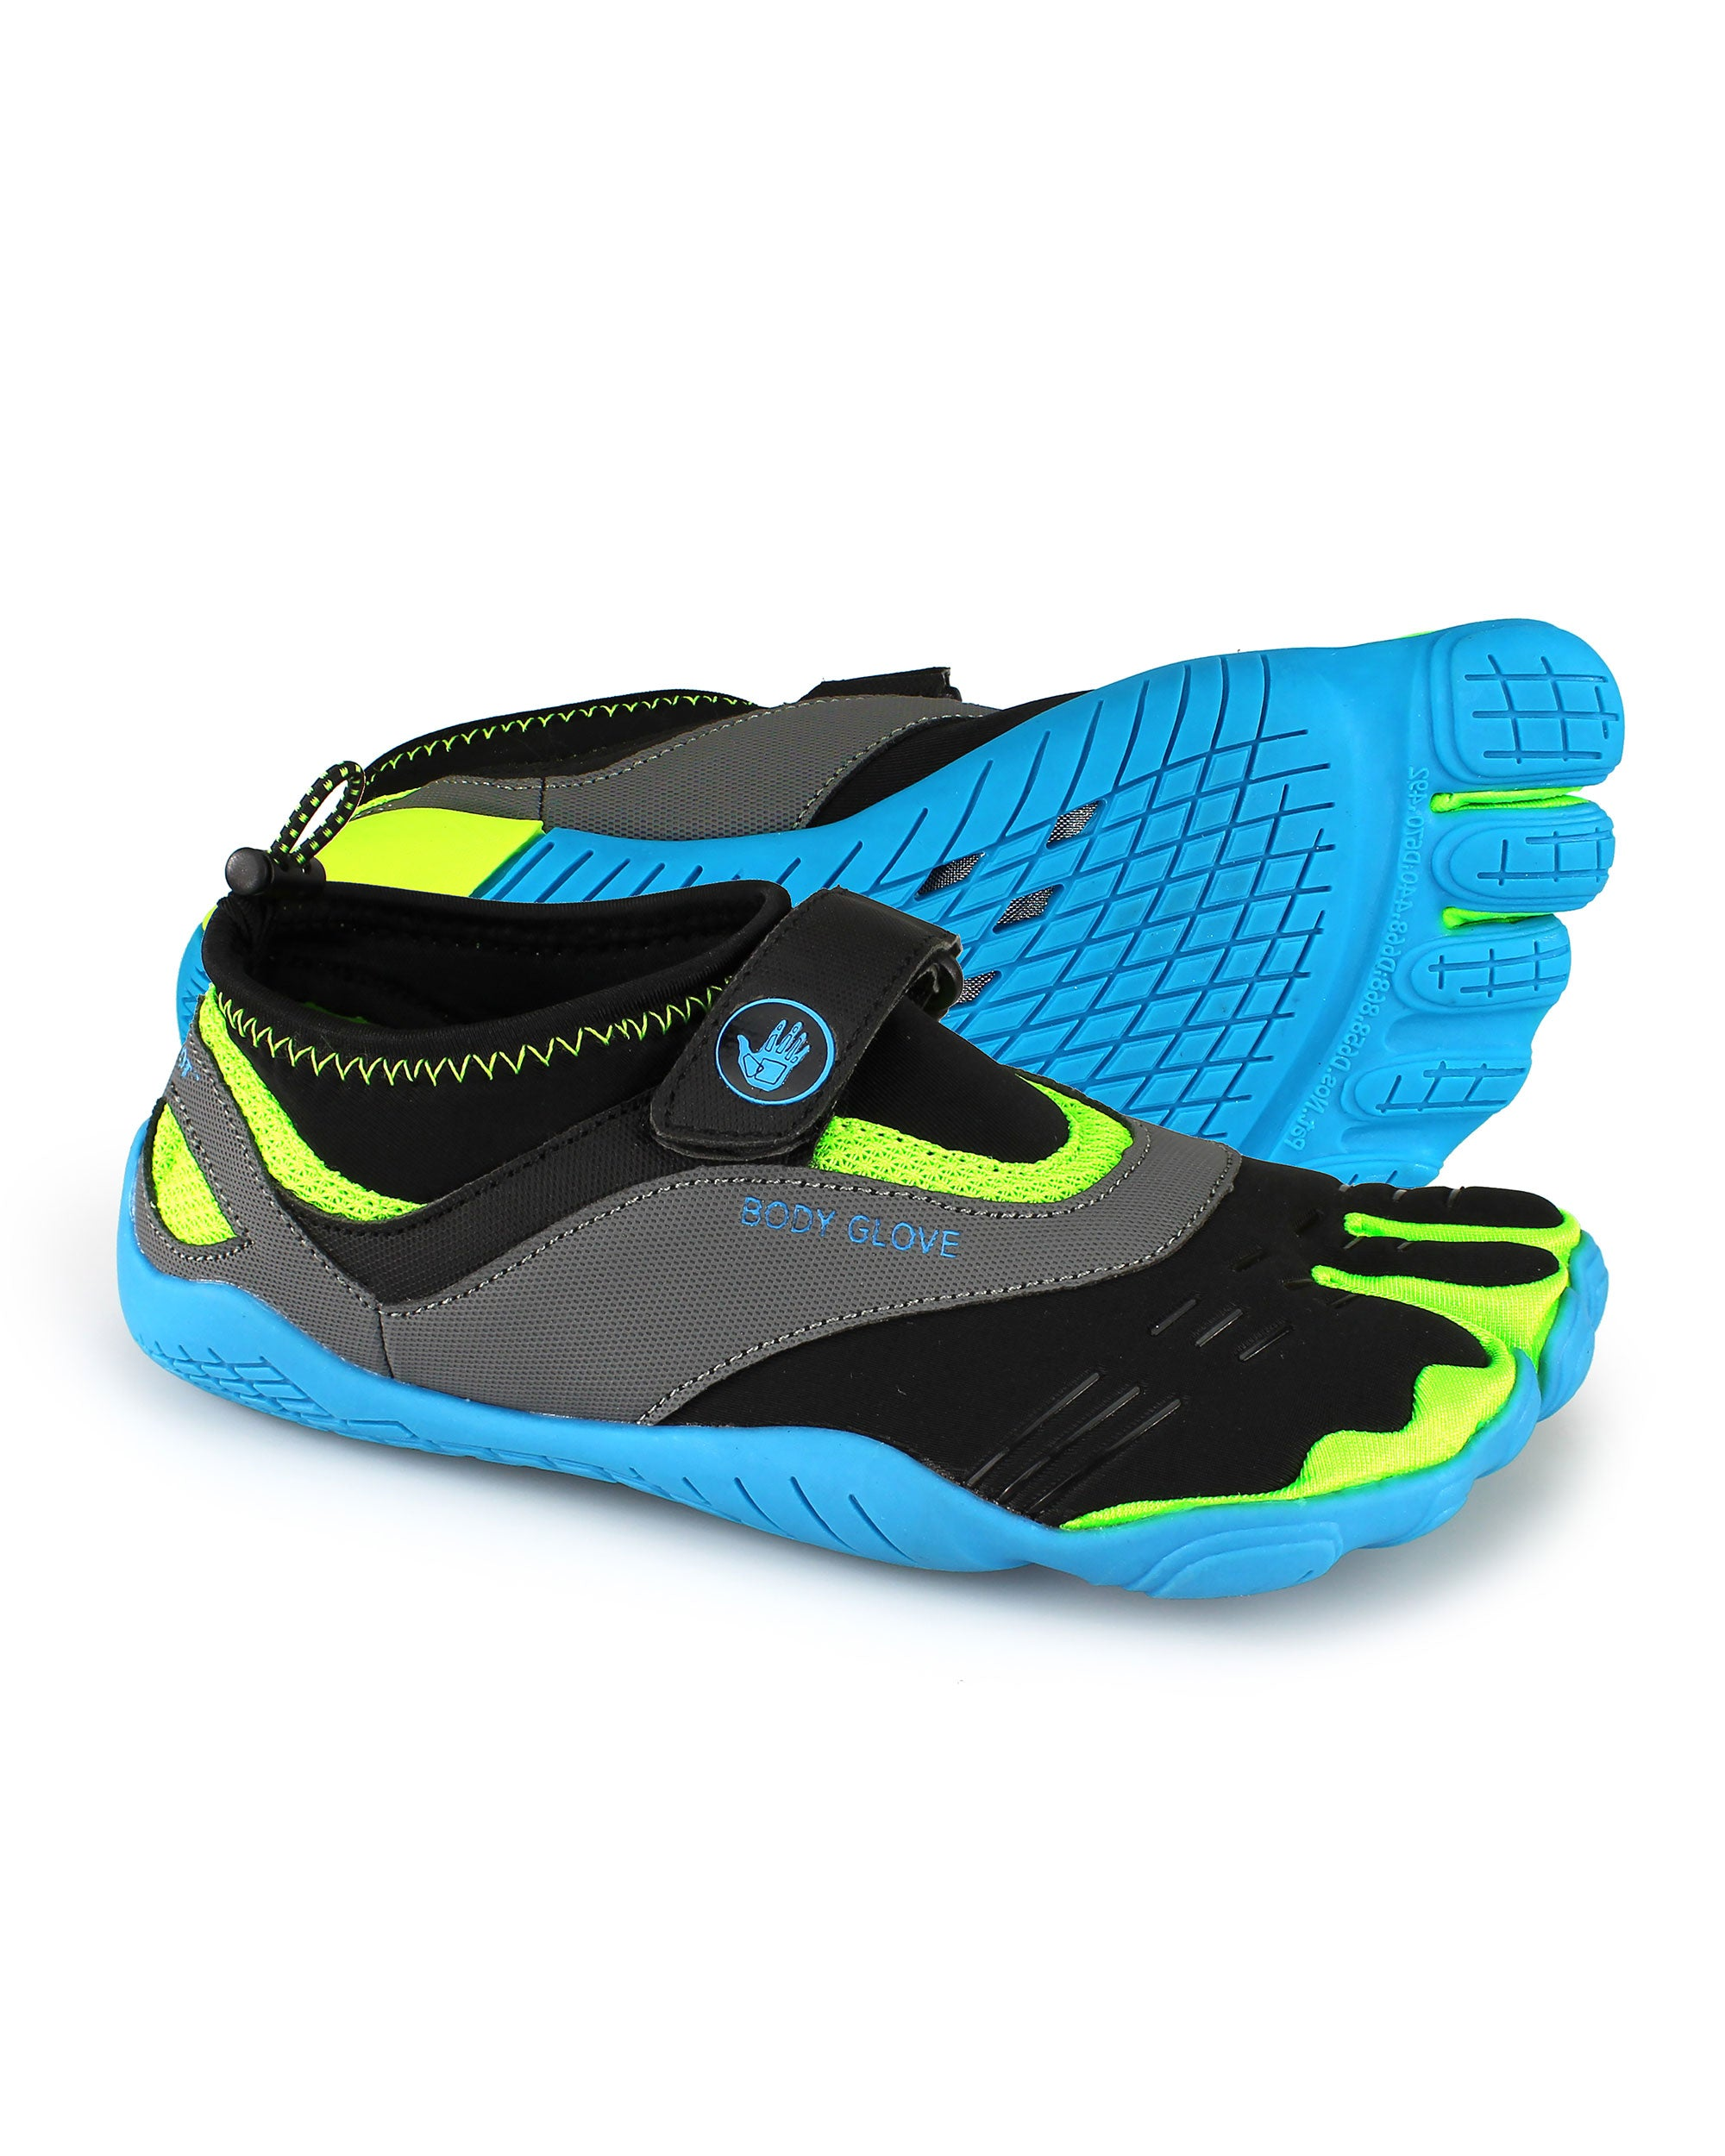 Women's 3T Barefoot Max Water Shoes - Neon Blue/Neon Yellow